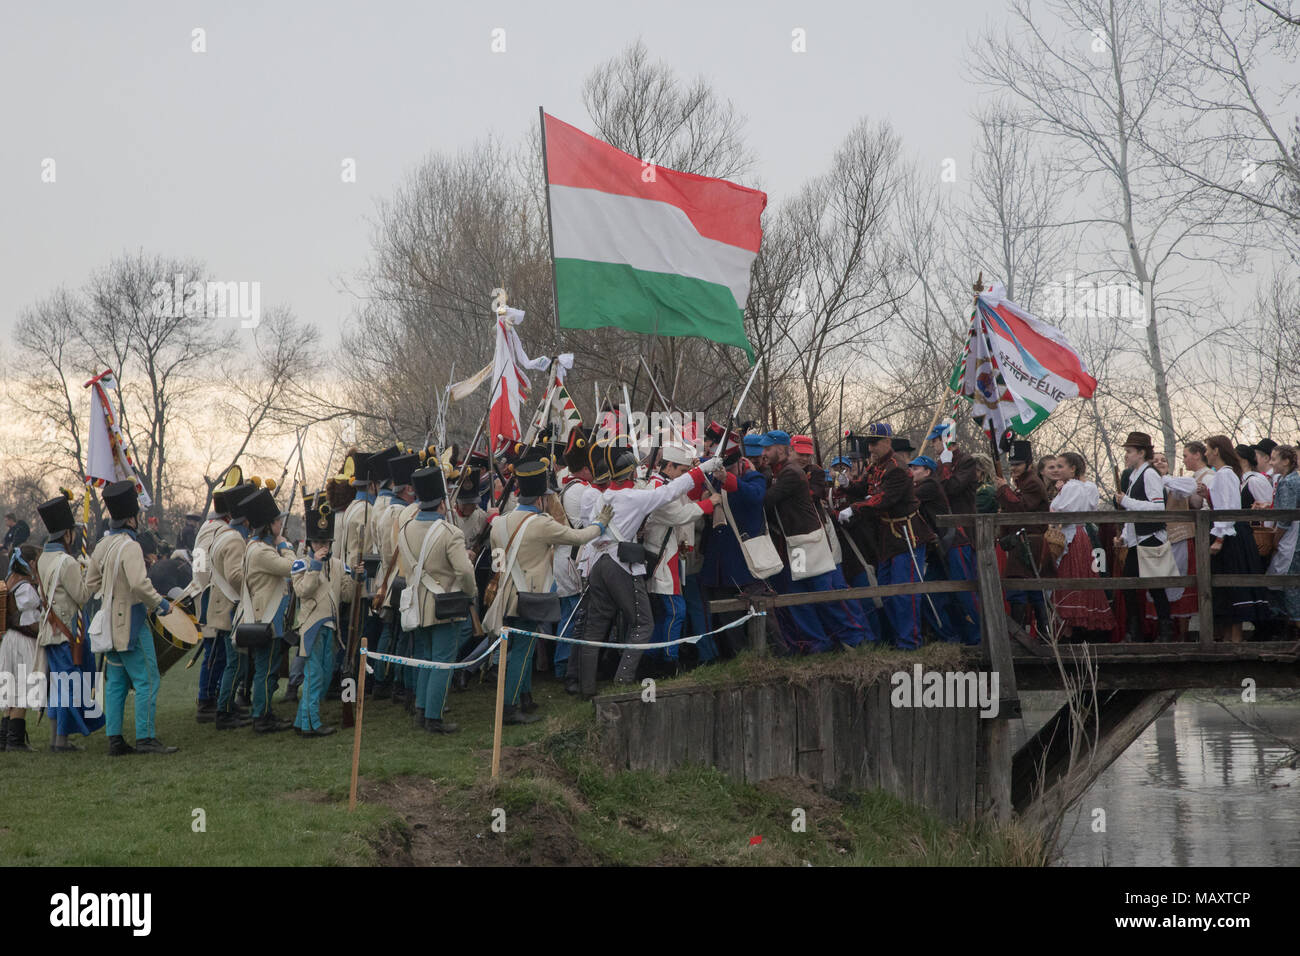 Tapiobicske, Hungary. 4th Apr, 2018. People re-enact a historic battle in Tapiobicske, Hungary, on April 4, 2018. Battle of Tapiobicske was fought on April 4, 1849 between the Hungarian army and the Austrian Empire during the Hungarian War of Independence. Credit: Attila Volgyi/Xinhua/Alamy Live News - Stock Image